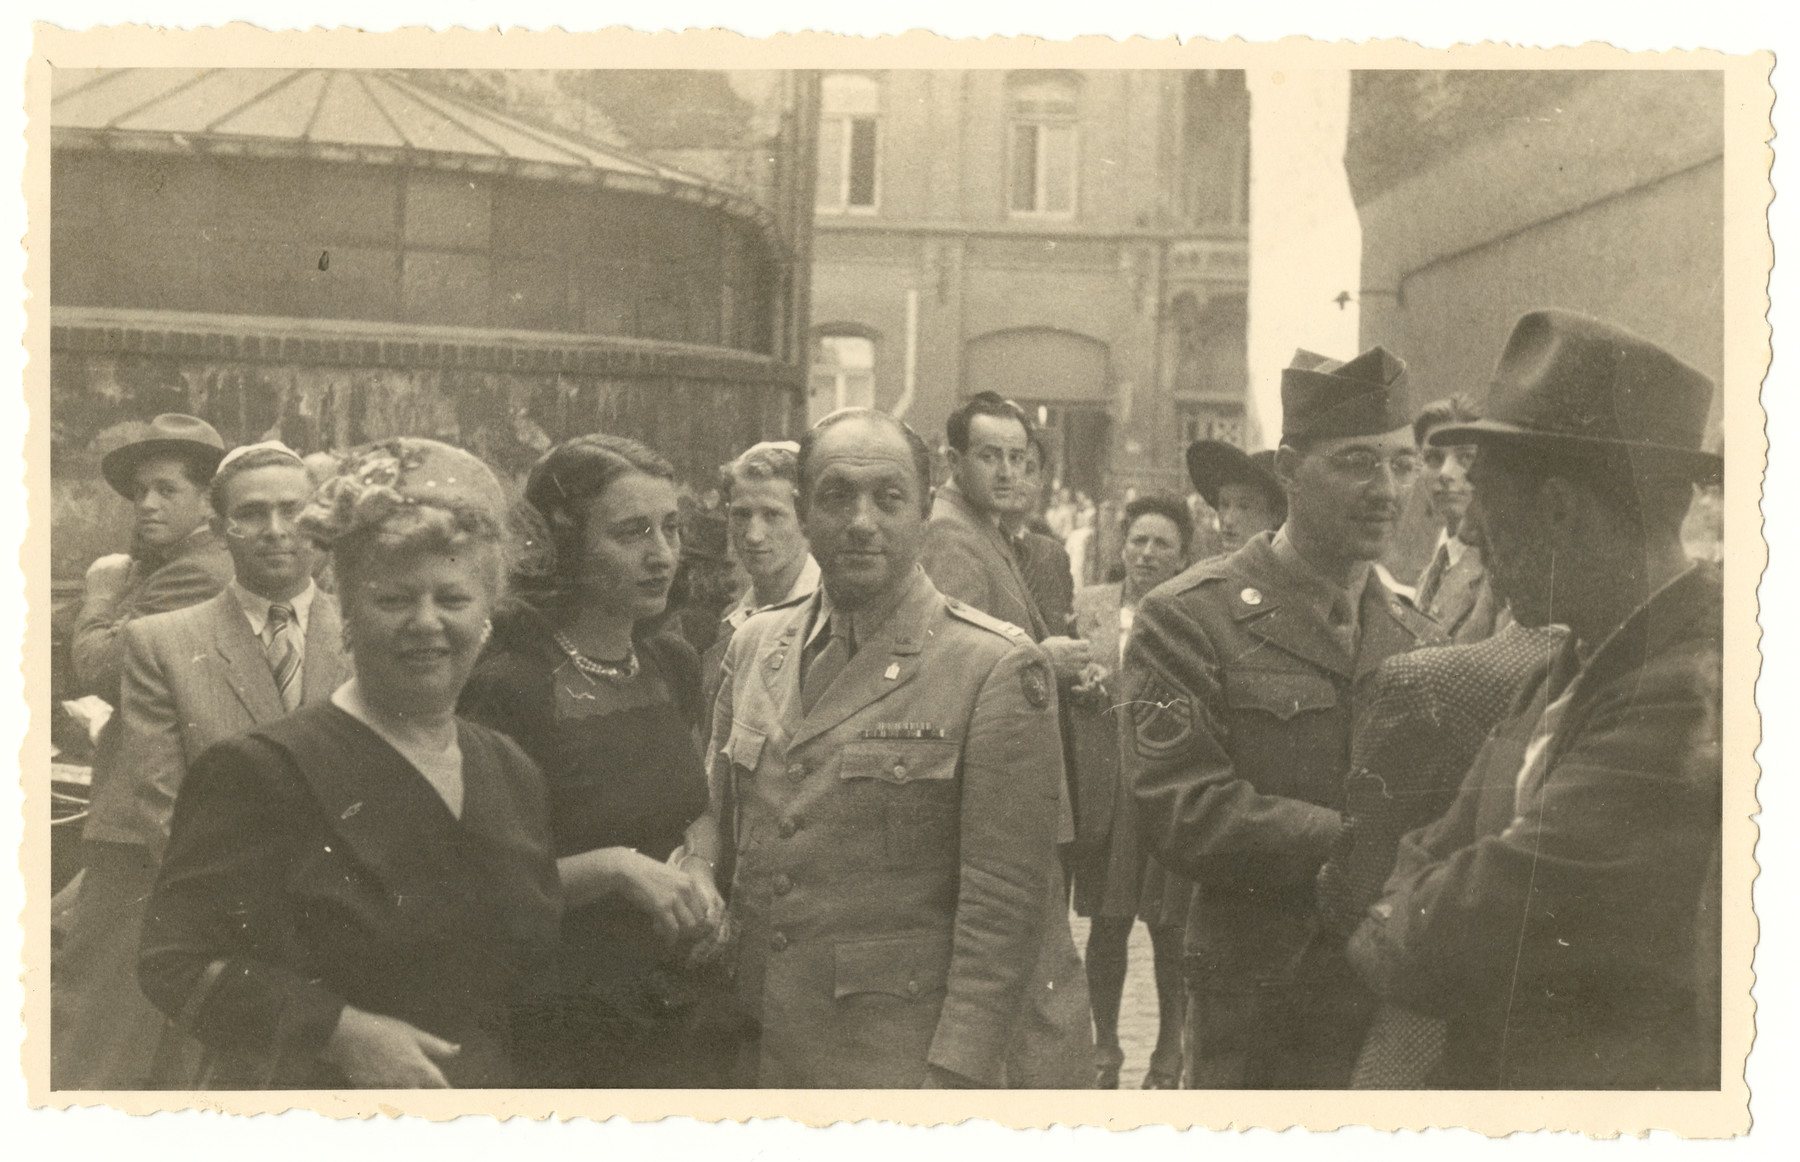 Jewish displaced persons and aid workers gather after Rosh Hashana services, probably in Wiesbaden.